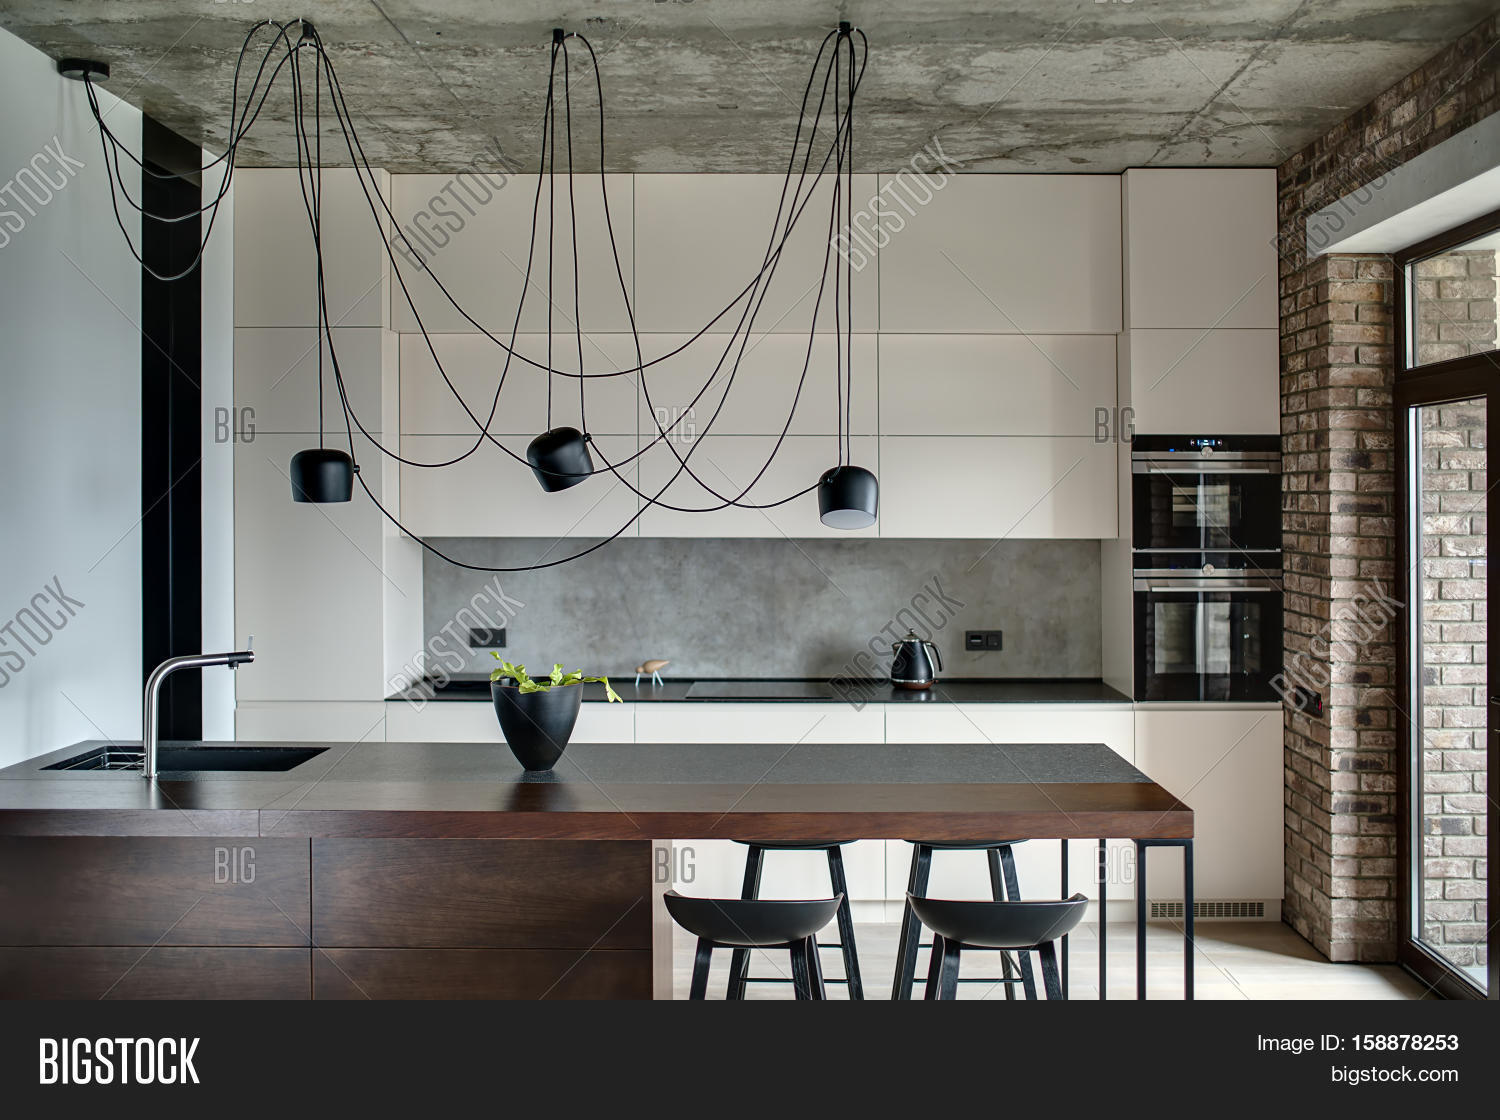 kitchen in a loft style with concrete and brick walls there is a kitchen island